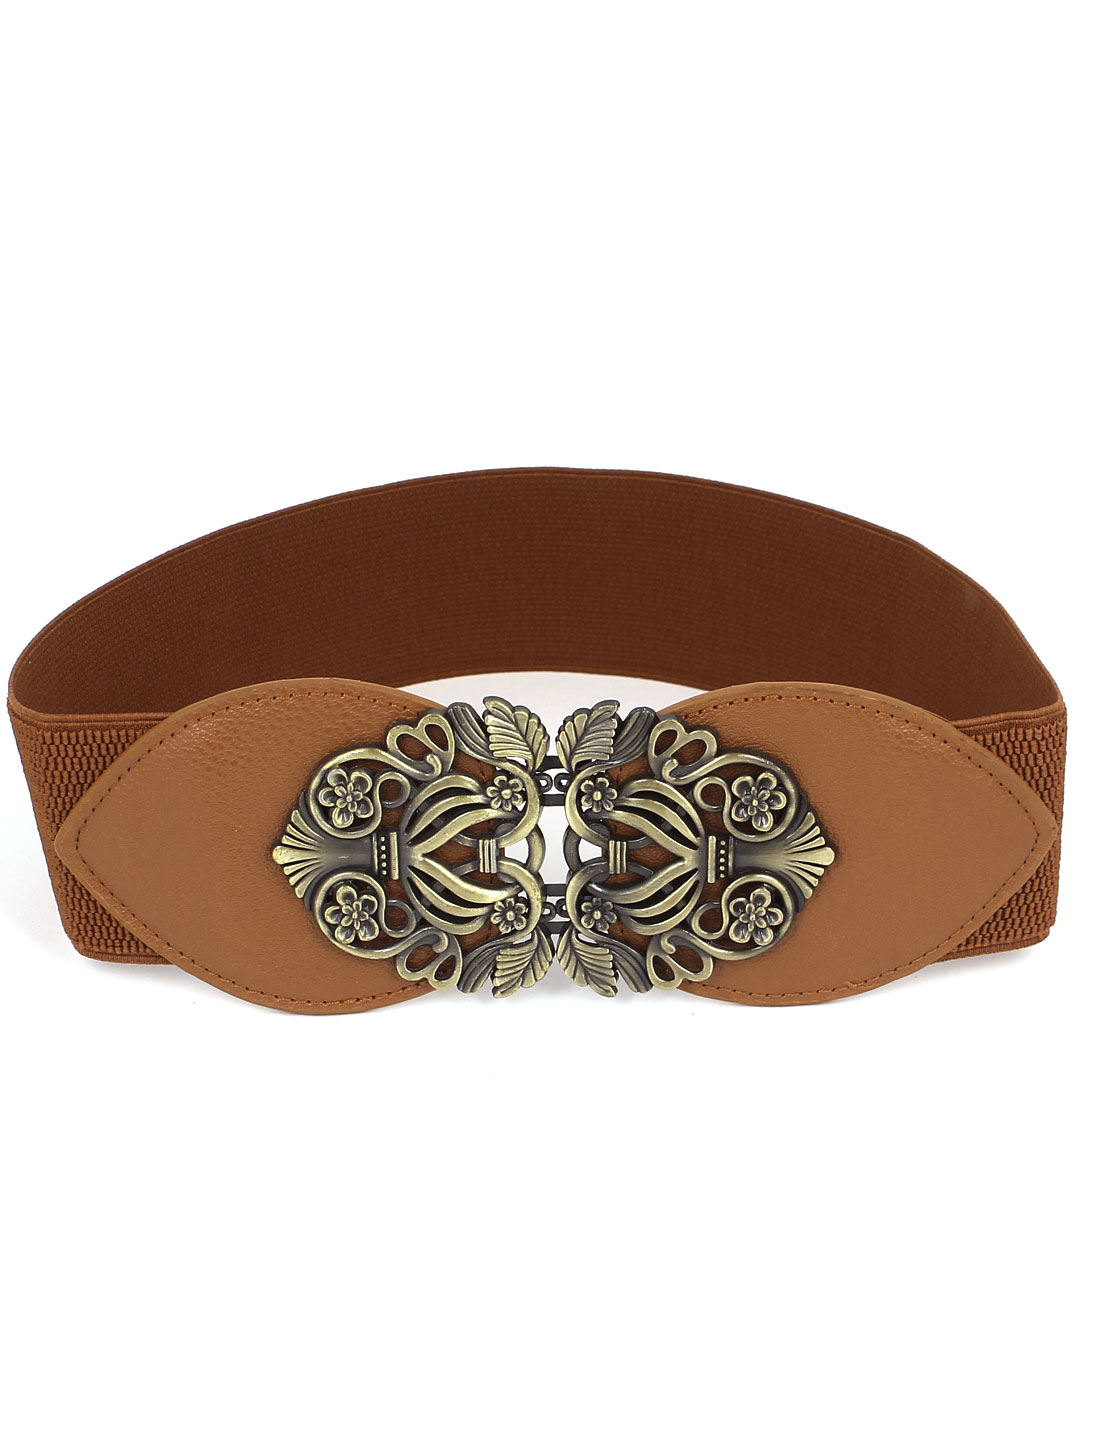 Women Flower Shape Metal Interlocking Buckle Faux Leather Stretchy Cinch Waist Belt Band Brown